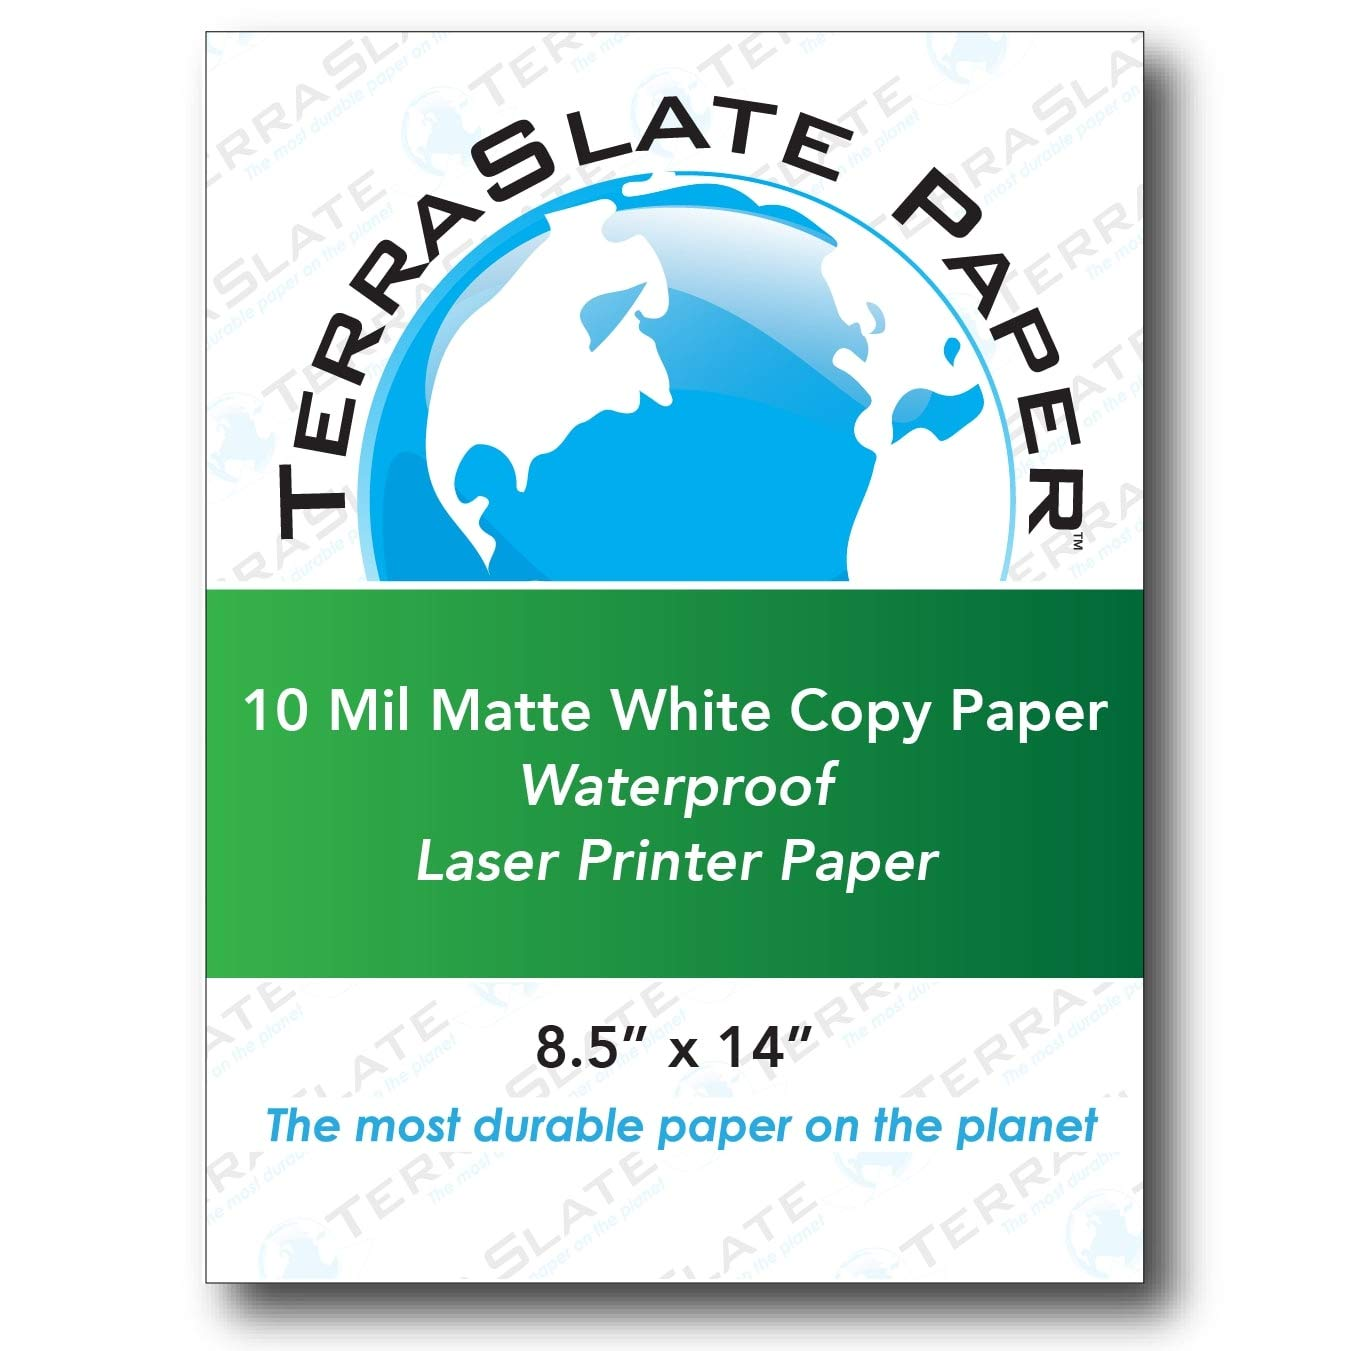 TerraSlate Paper 10 MIL 8.5'' x 14'' Waterproof Laser Printer/Copy Paper 250 Sheets (10x250)